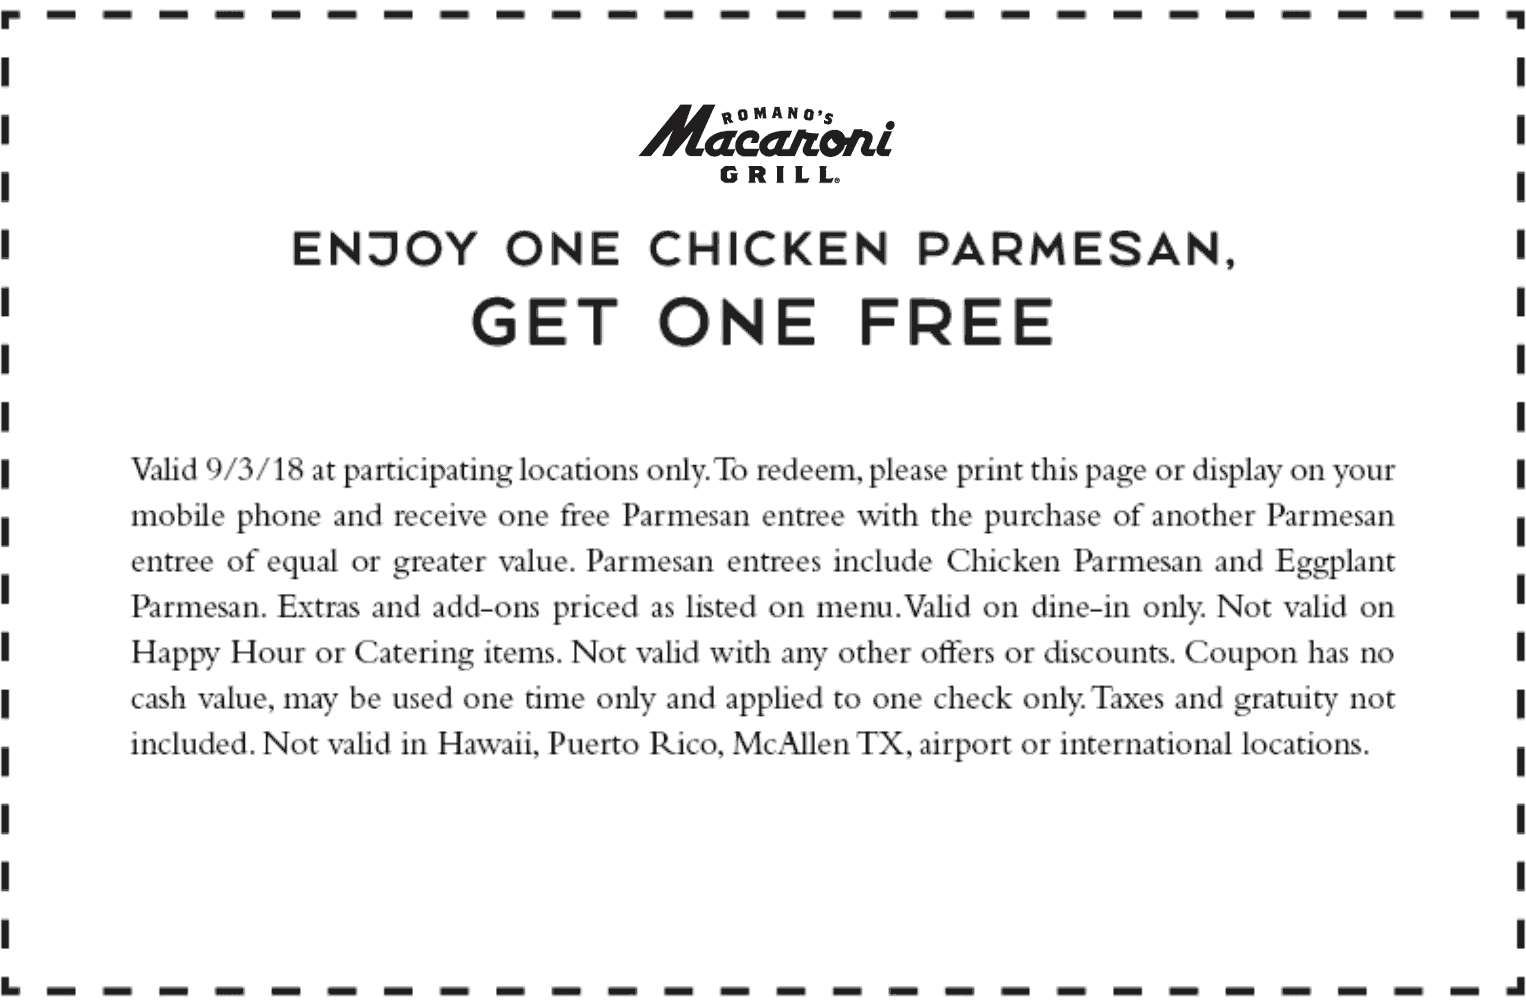 Macaroni Grill Coupon September 2019 Second chicken parmesan free today at Macaroni Grill